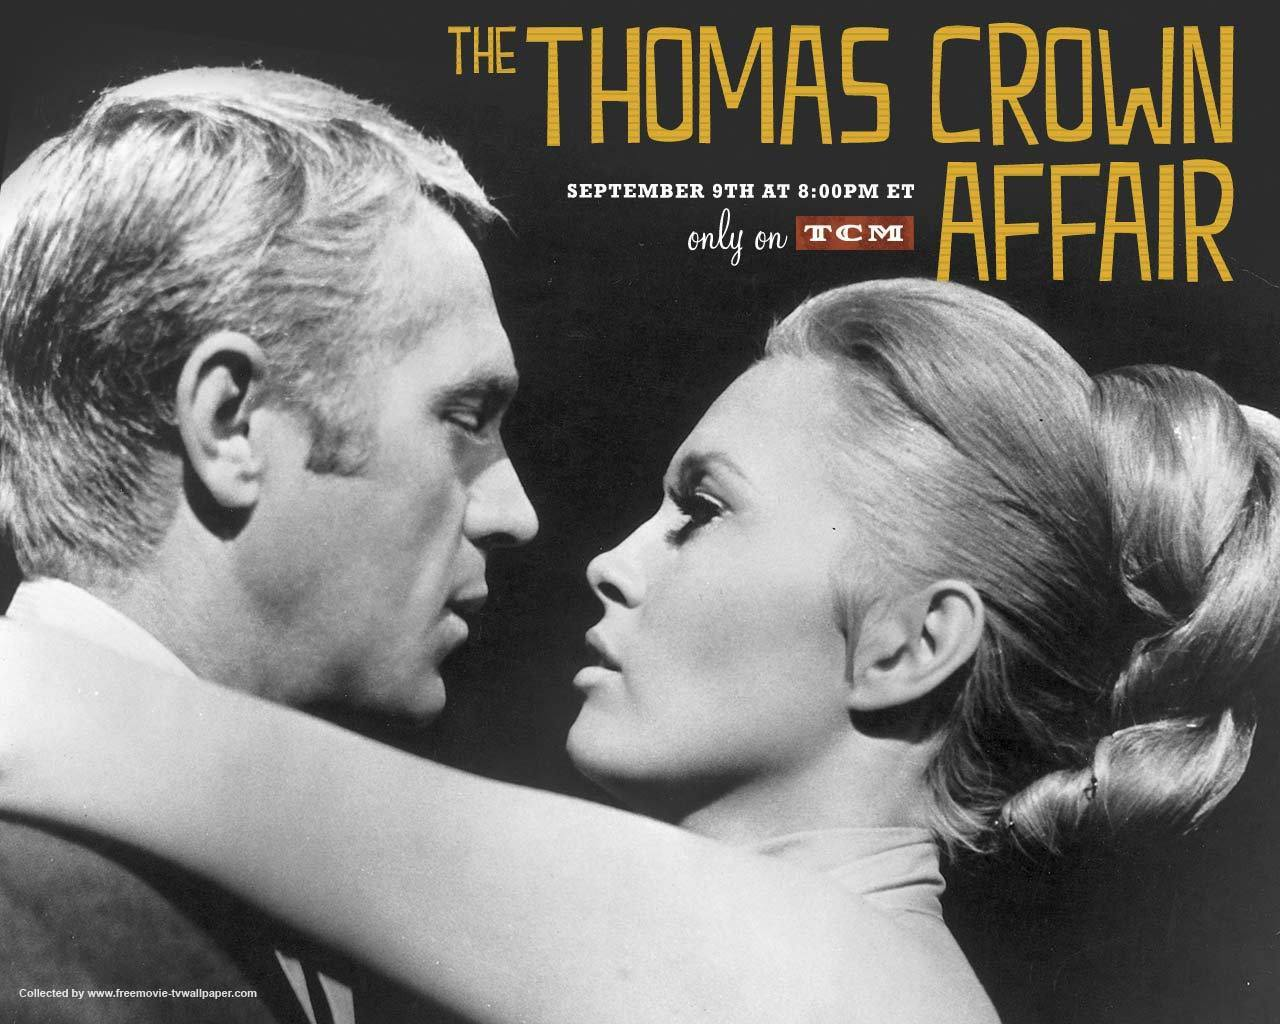 Classic Movies images The Thomas Crown Affair HD wallpaper and background photos